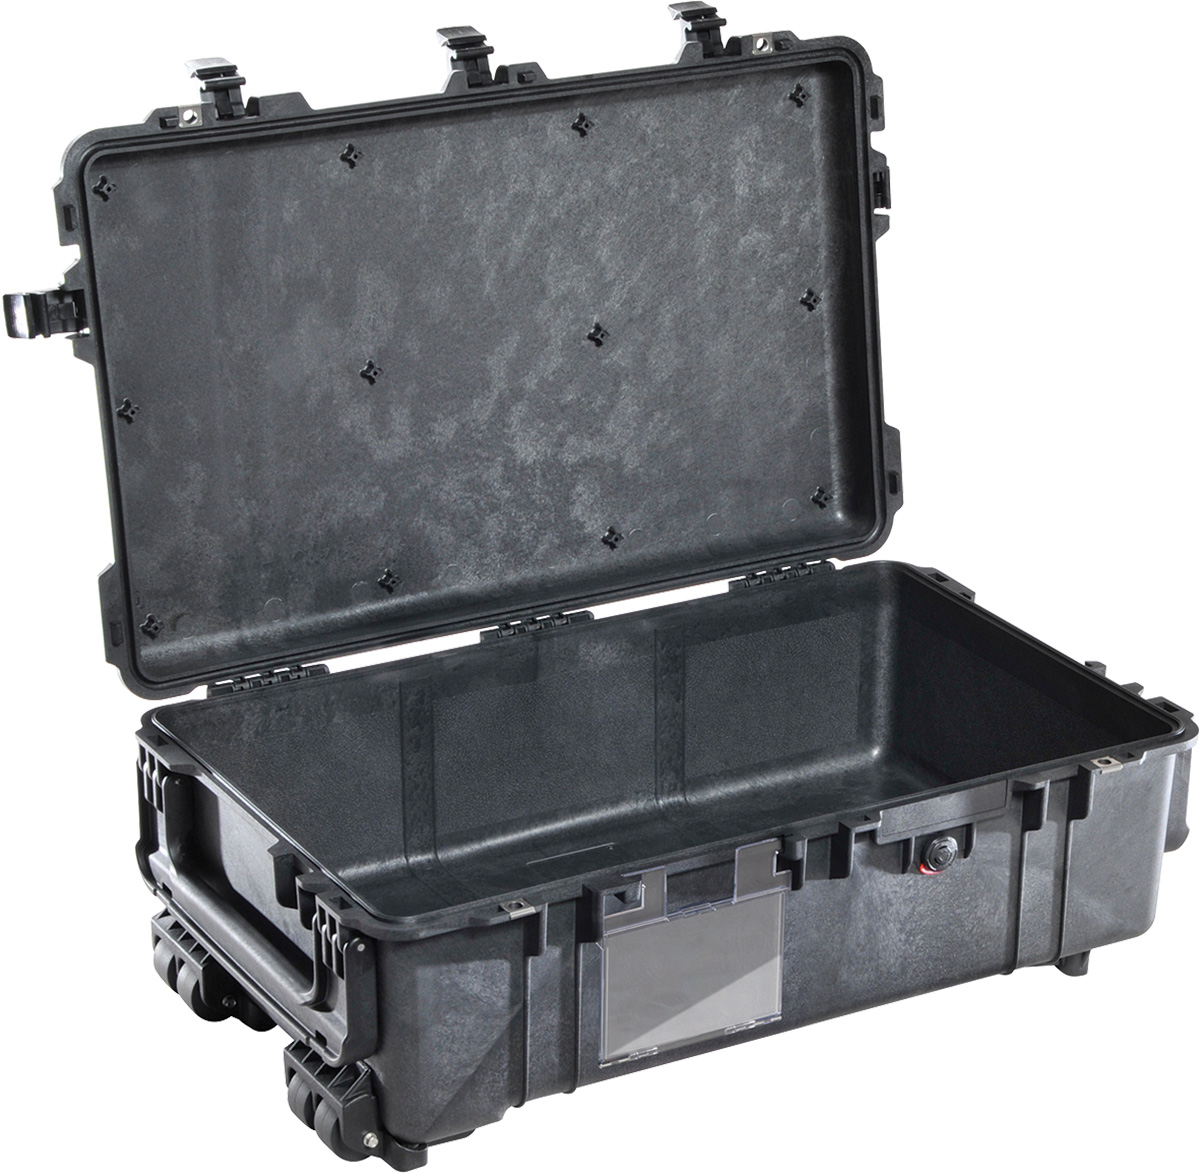 pelican 1670 protector waterproof case